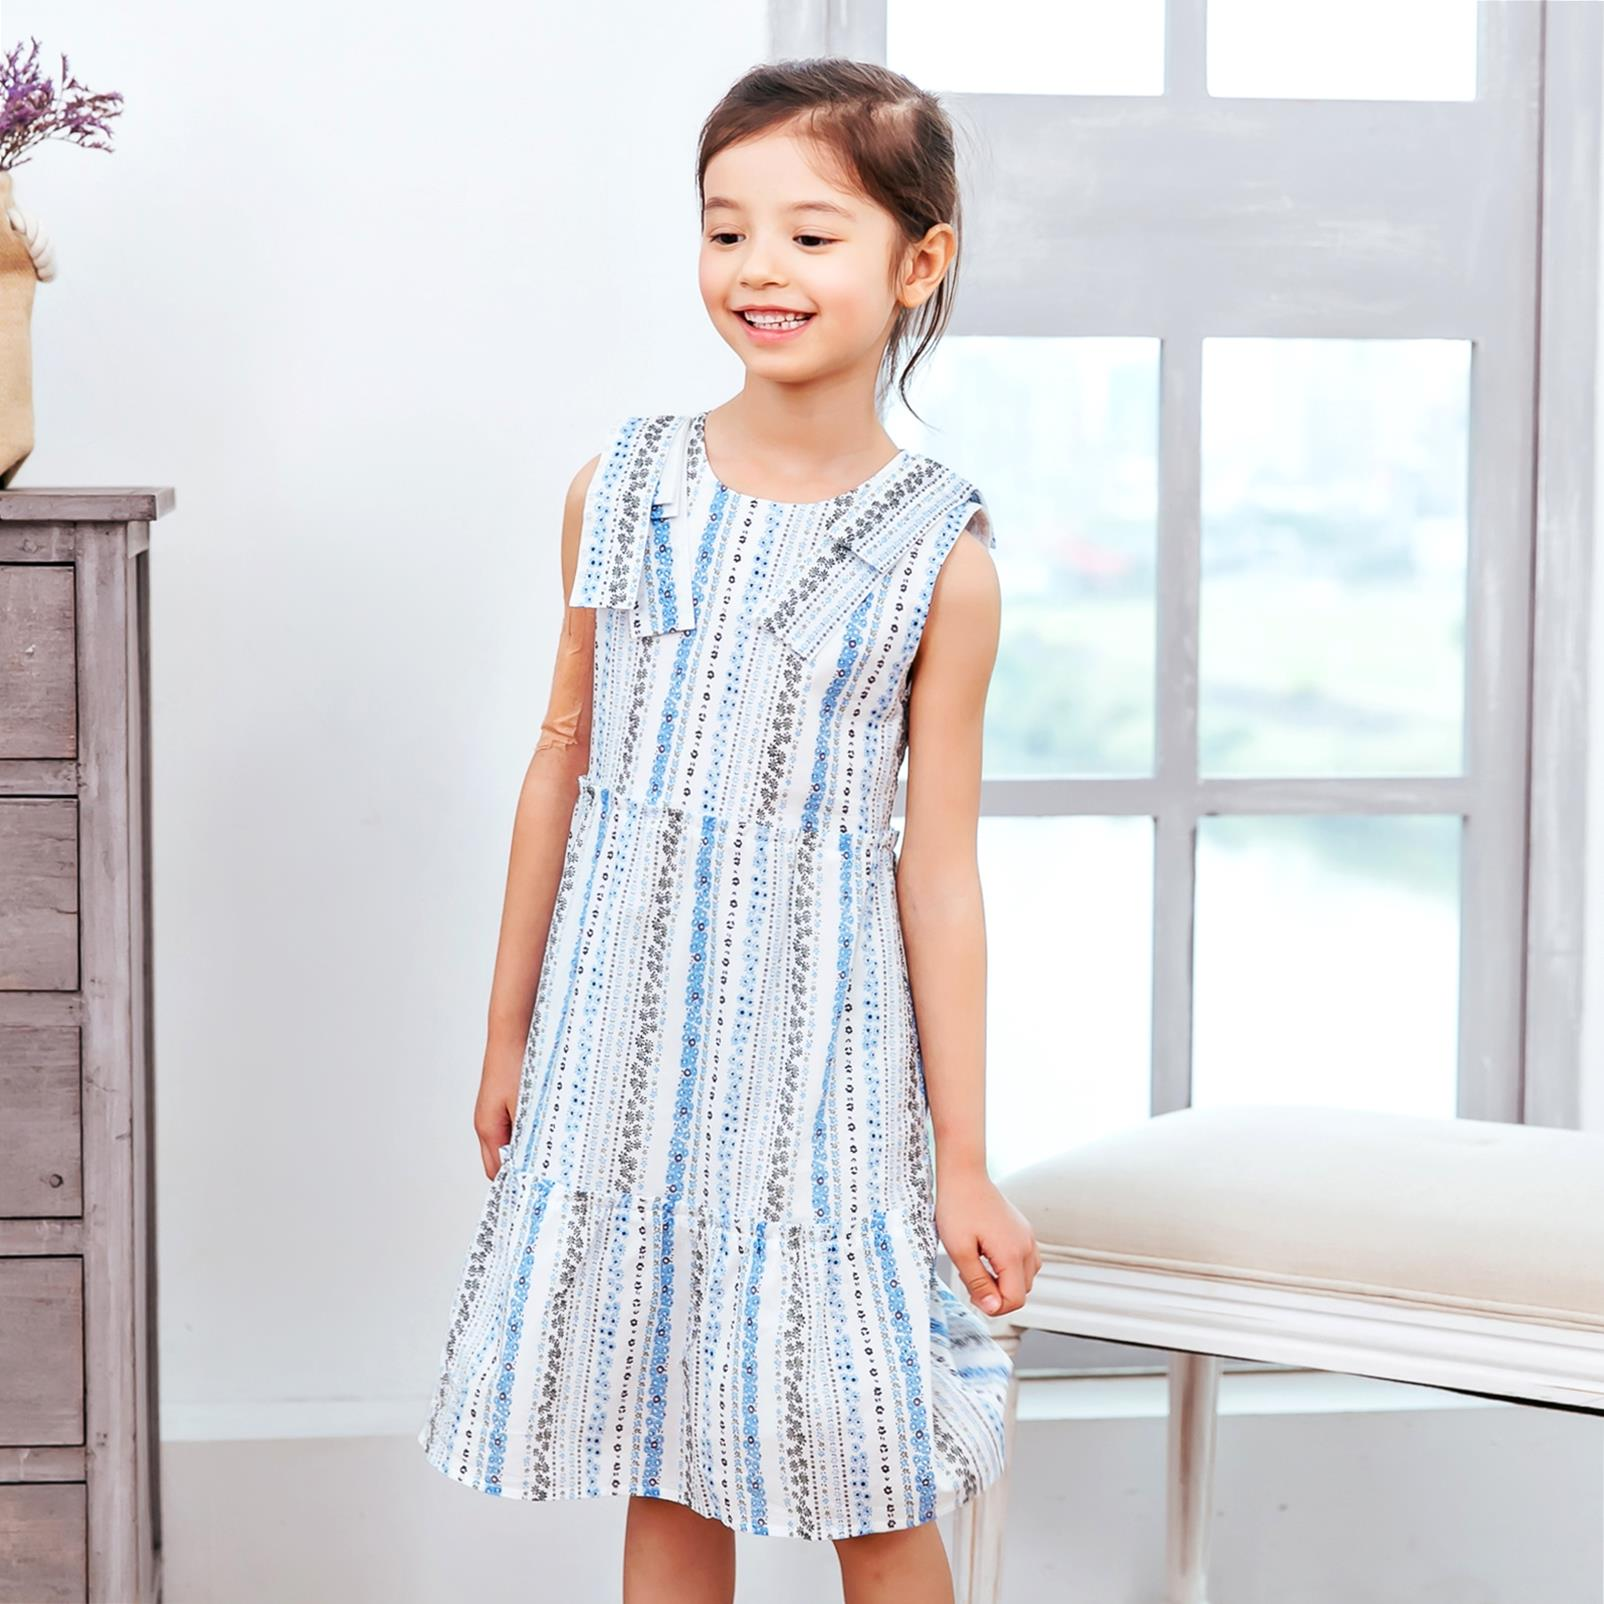 Girl Dress -Sleeveless Blue floral stripped fit-n-flare dress